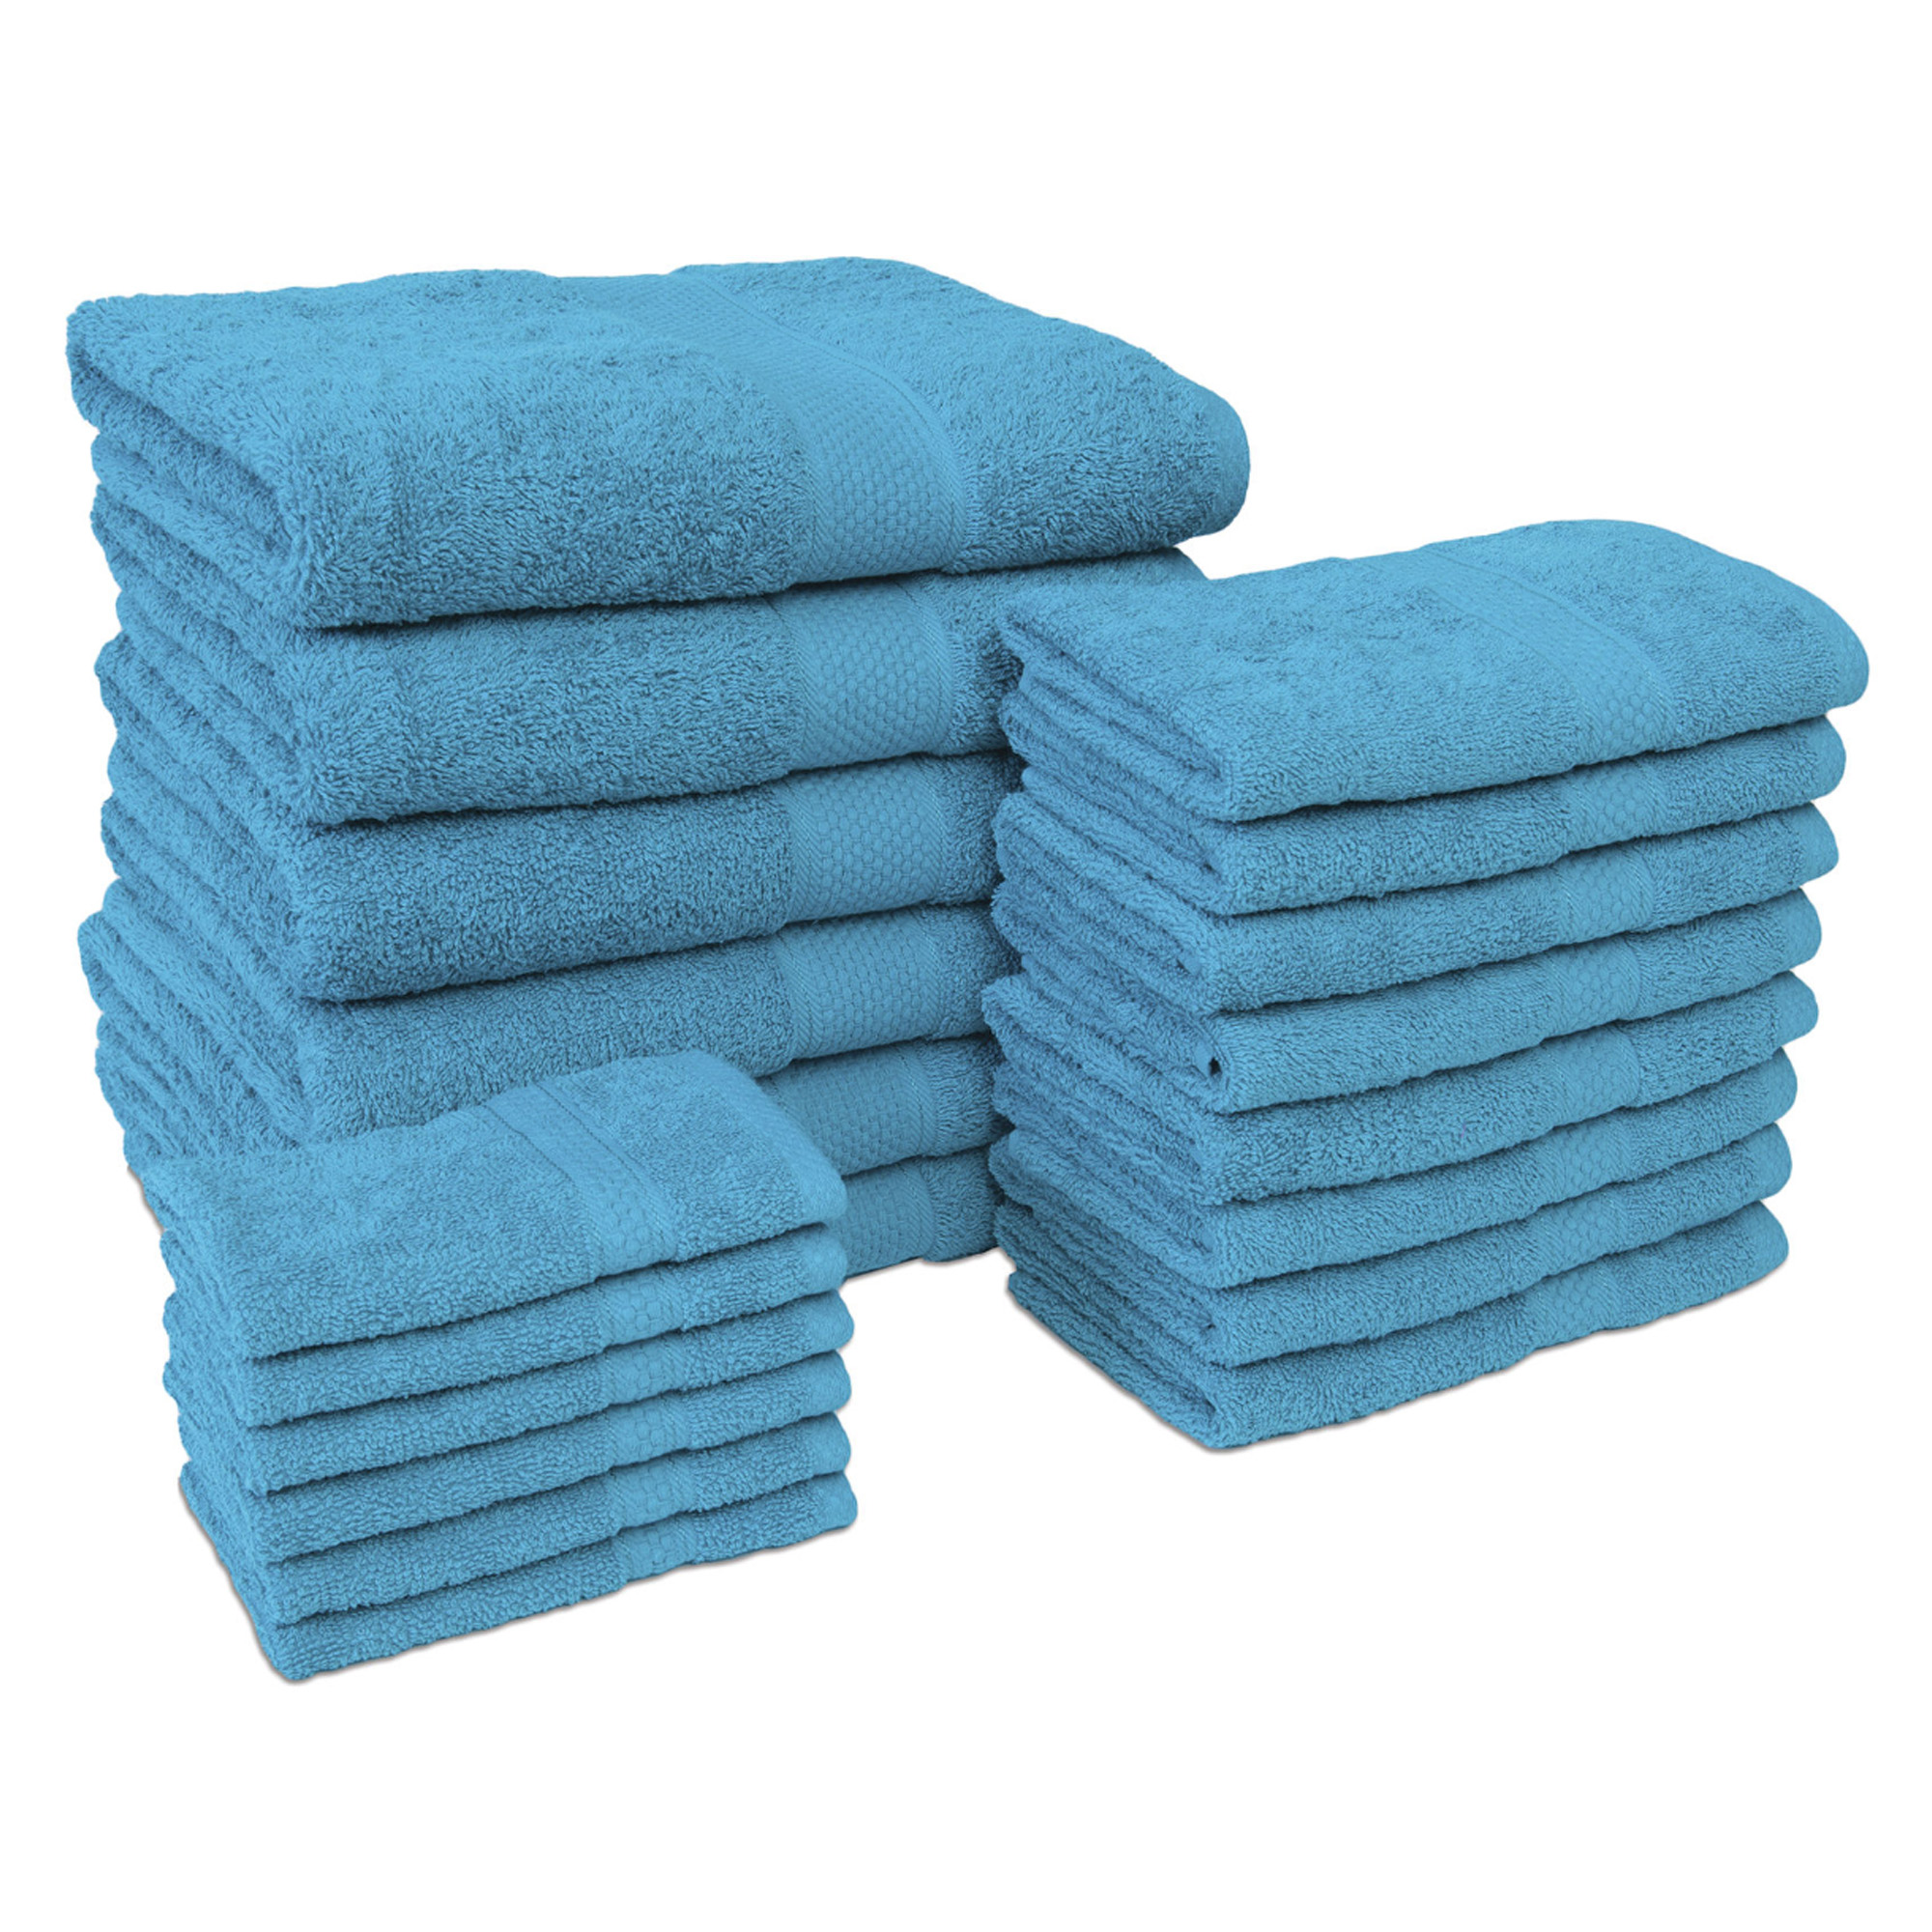 Jumbo 20 Piece Towel Set in Teal